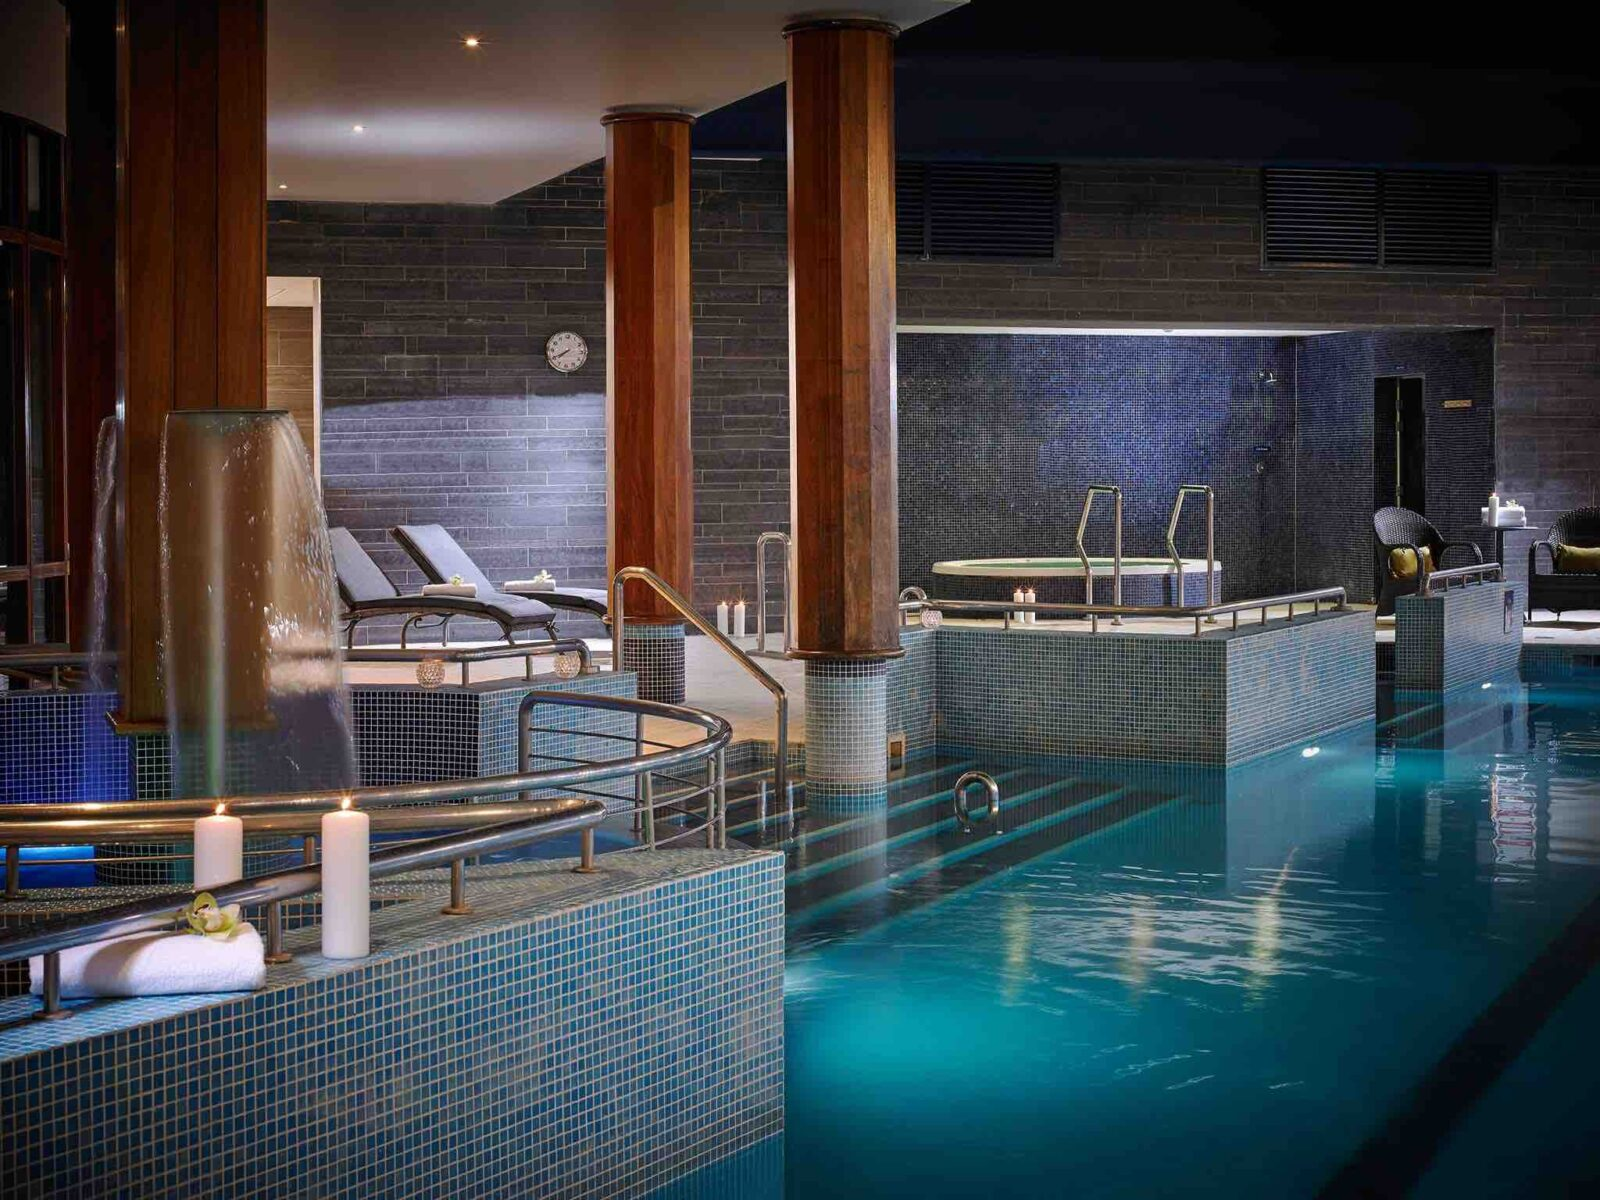 MFI-Castleknock Hotel spa rea swimming pools and hot tubs of luxury dubin hotel spas